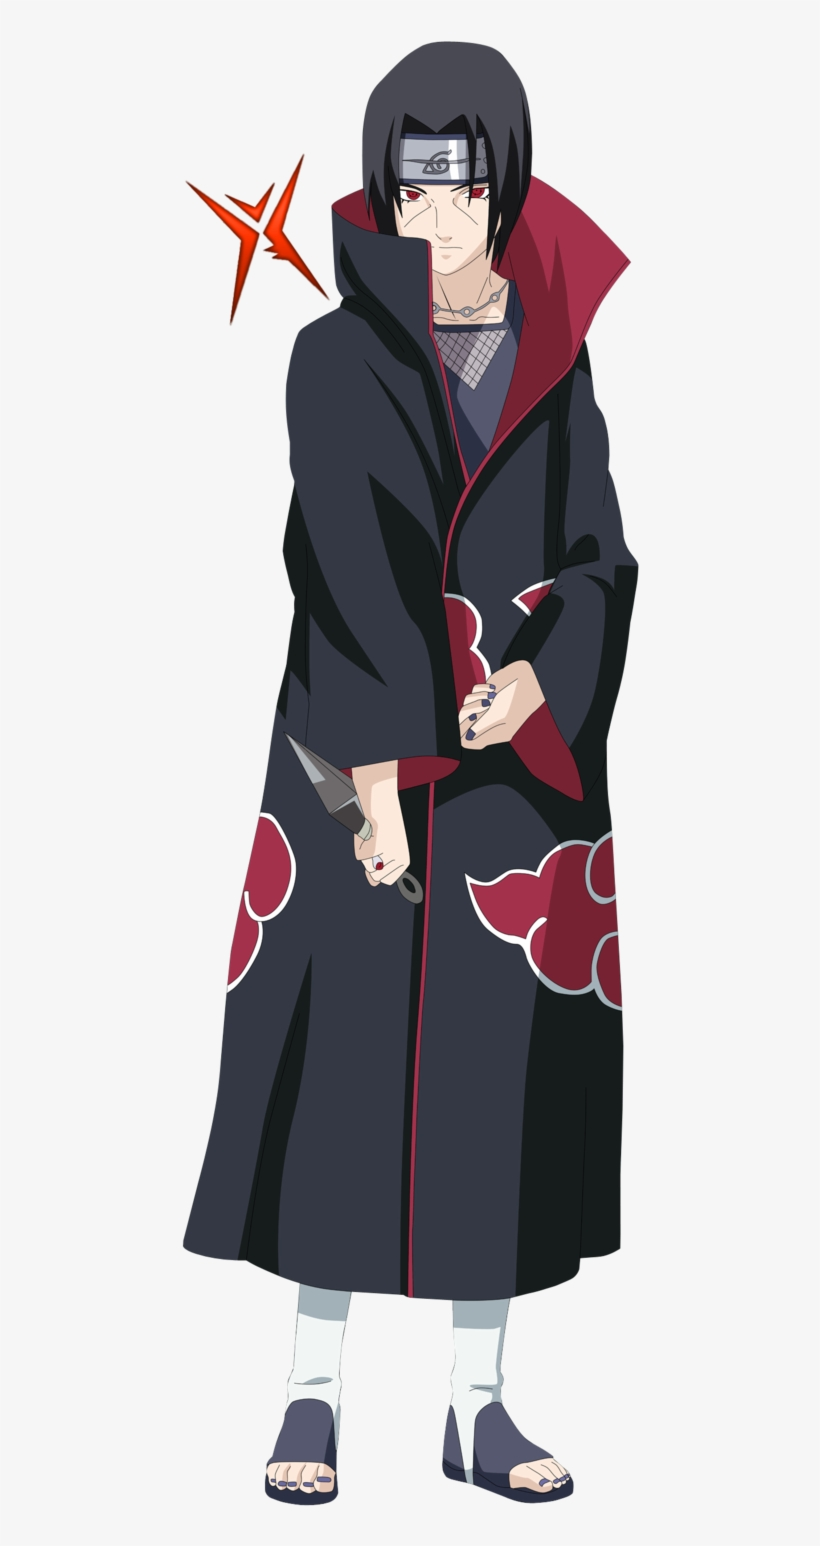 Itachi Uchiha By Rokkx On Deviantart Itachi Uchiha No Background Transparent Png 532x1499 Free Download On Nicepng